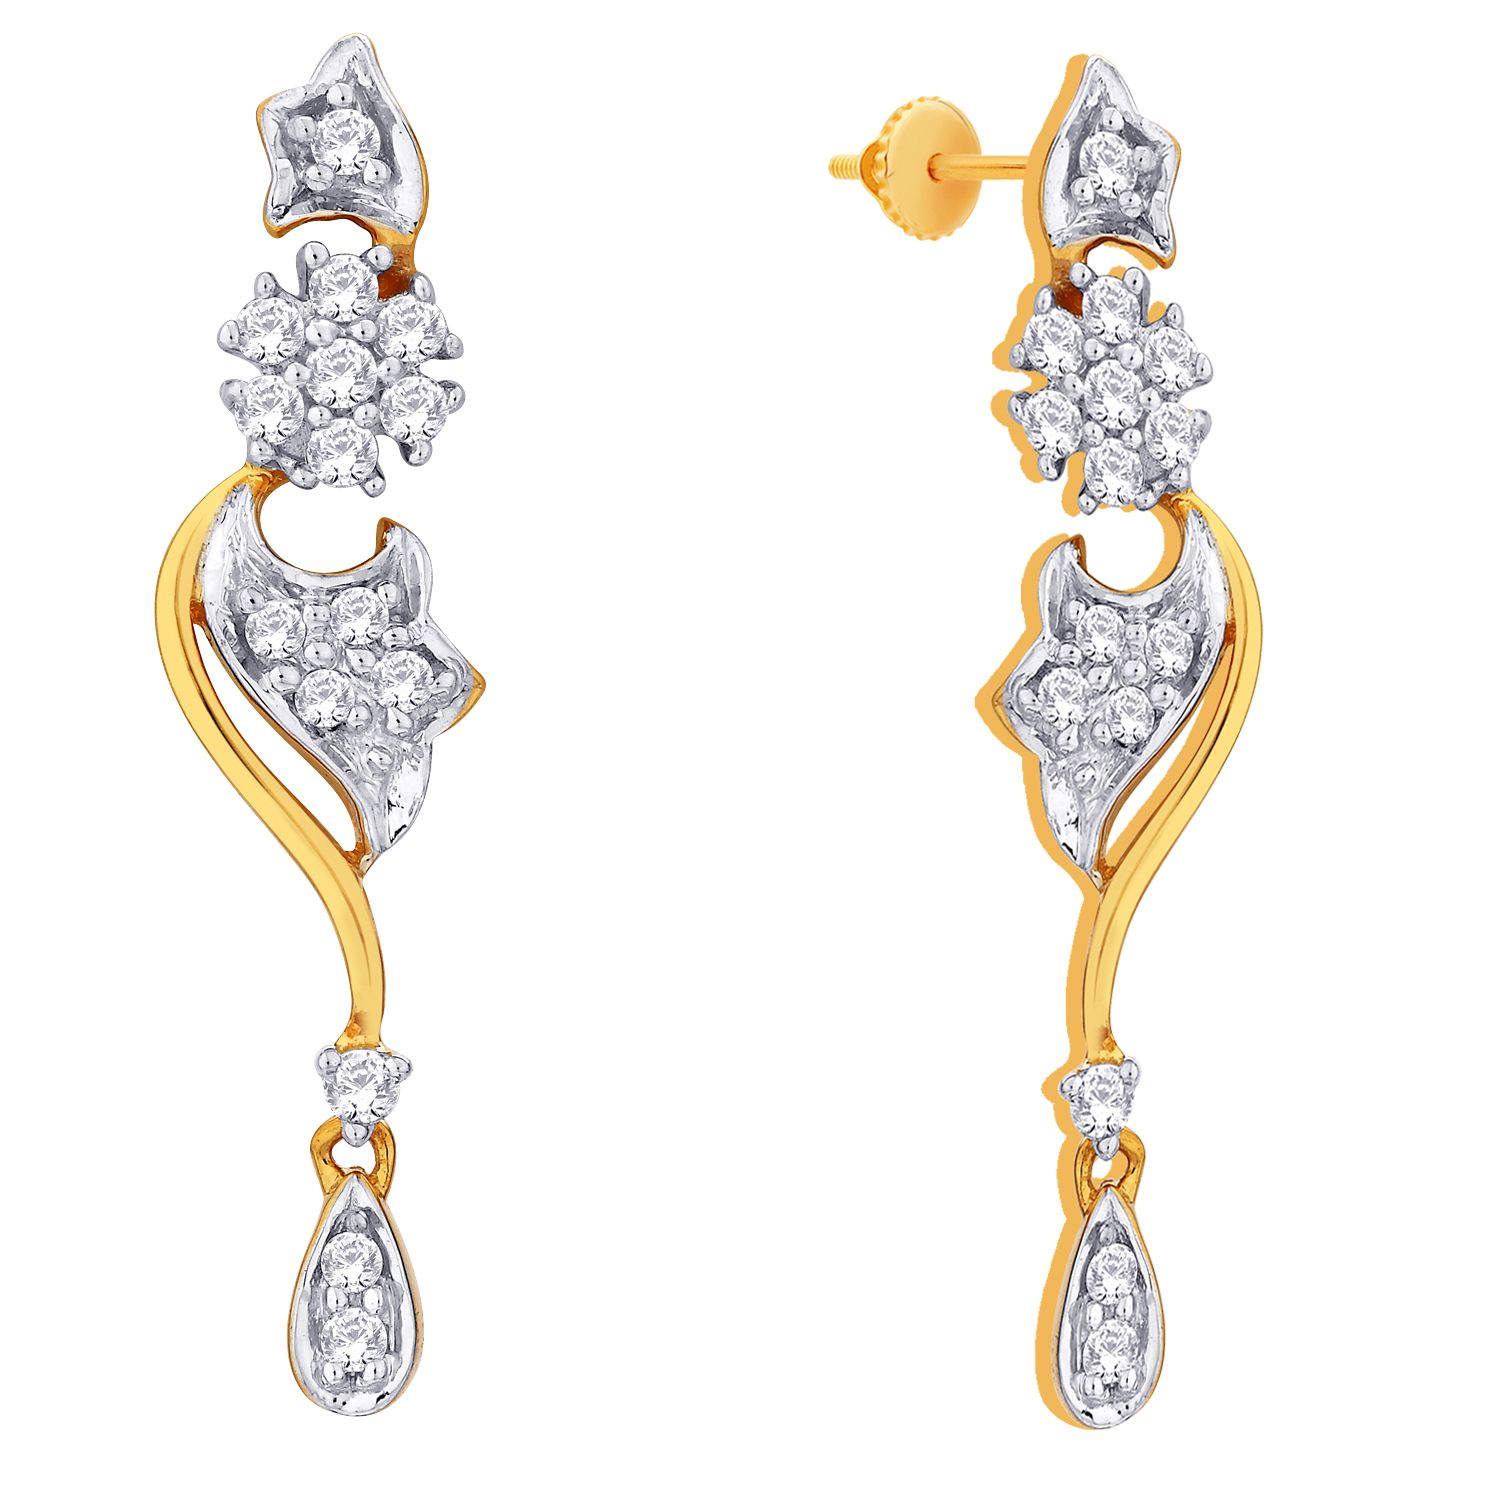 Diamond Earrings With Price See More Amazing Jewelry At Diamondscape!  #jewelry